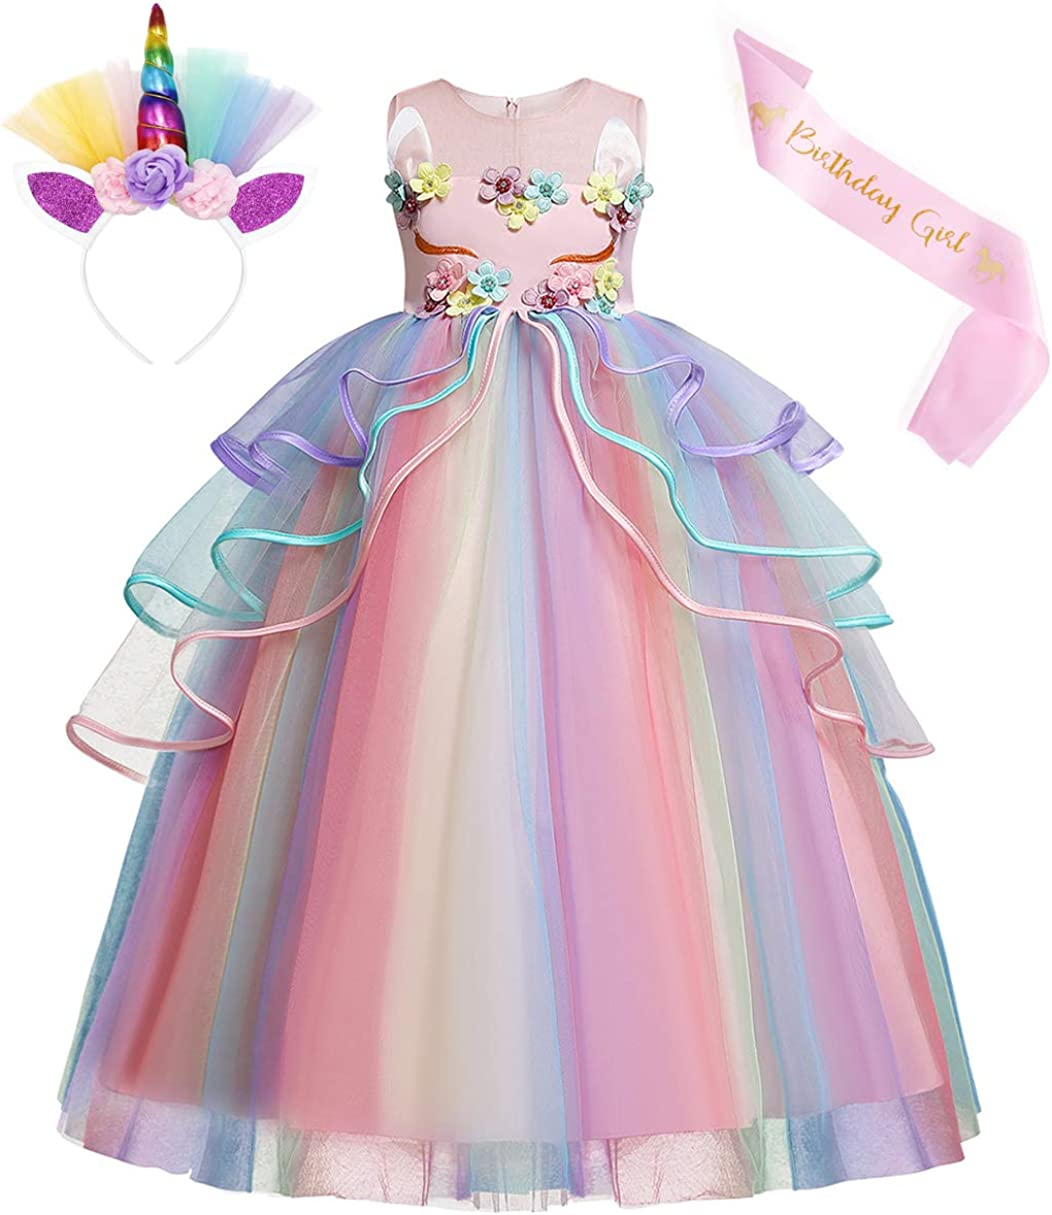 COTRIO Unicorn Birthday Max 60% OFF Party Costume famous Dress Girls Evening Flower